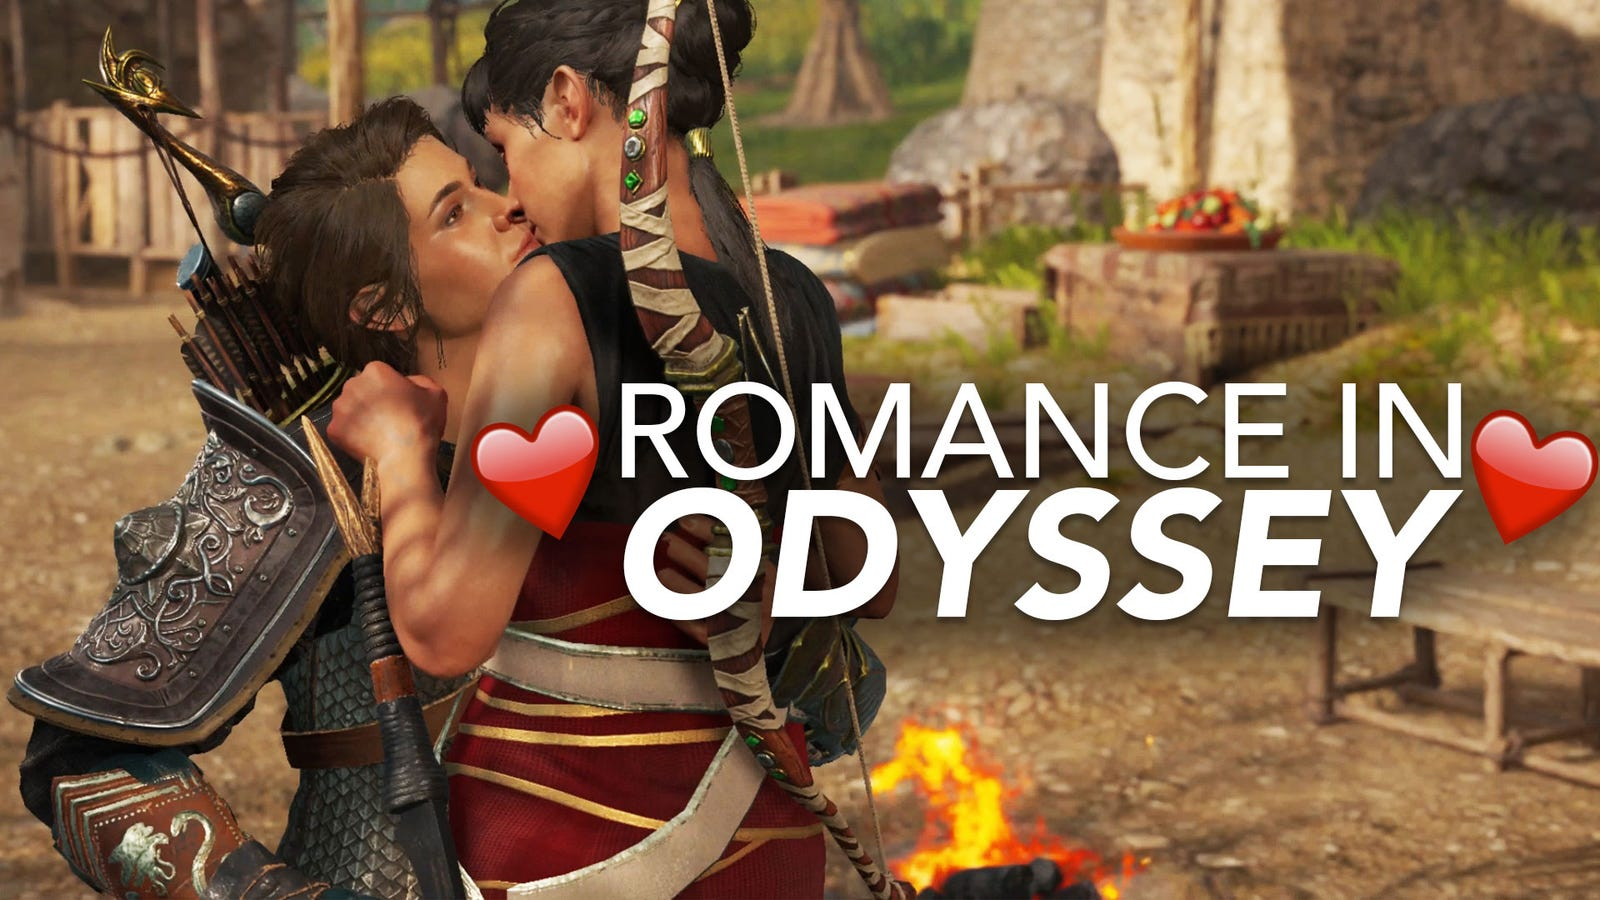 Assassins creed odyssey always flirt [PUNIQRANDLINE-(au-dating-names.txt) 38